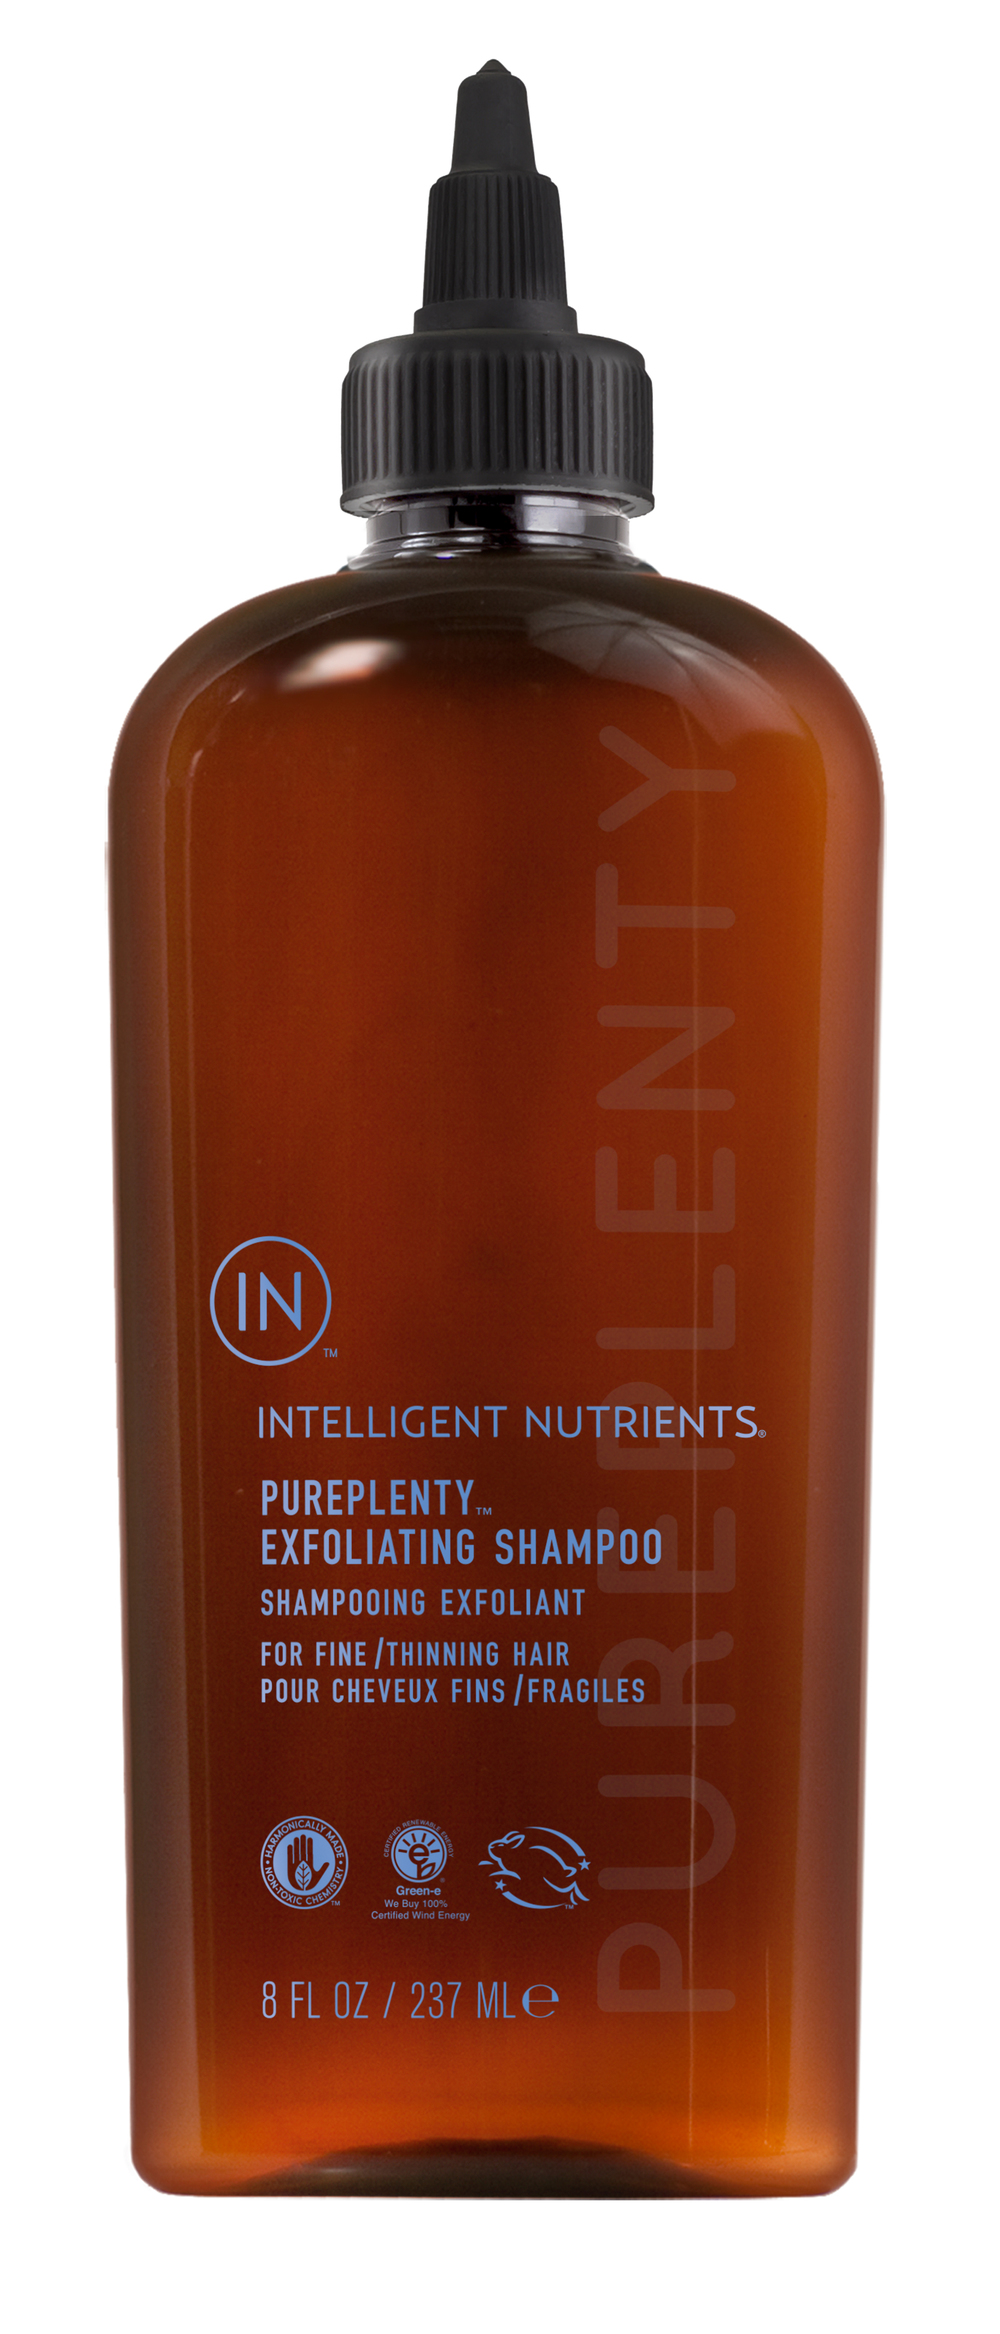 PurePlenty™ Exfoliating Shampoo  (DKK320/237ml)